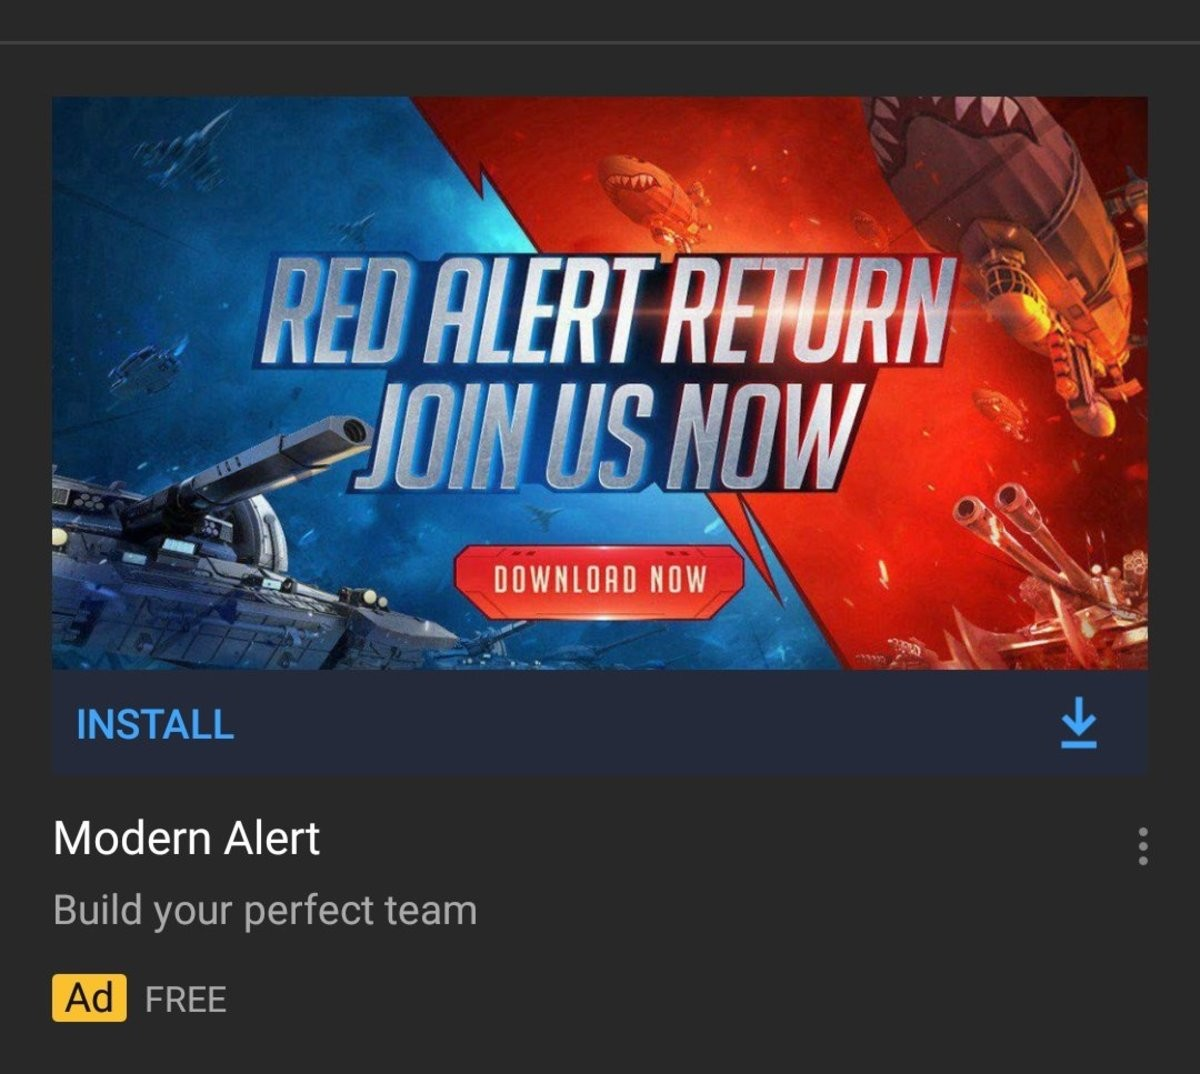 modern alert. .. Never played Command and Conquer, Total Annihilation was my jam but I feel for the fans who watched their beloved franchise turned into a bad mobile game.